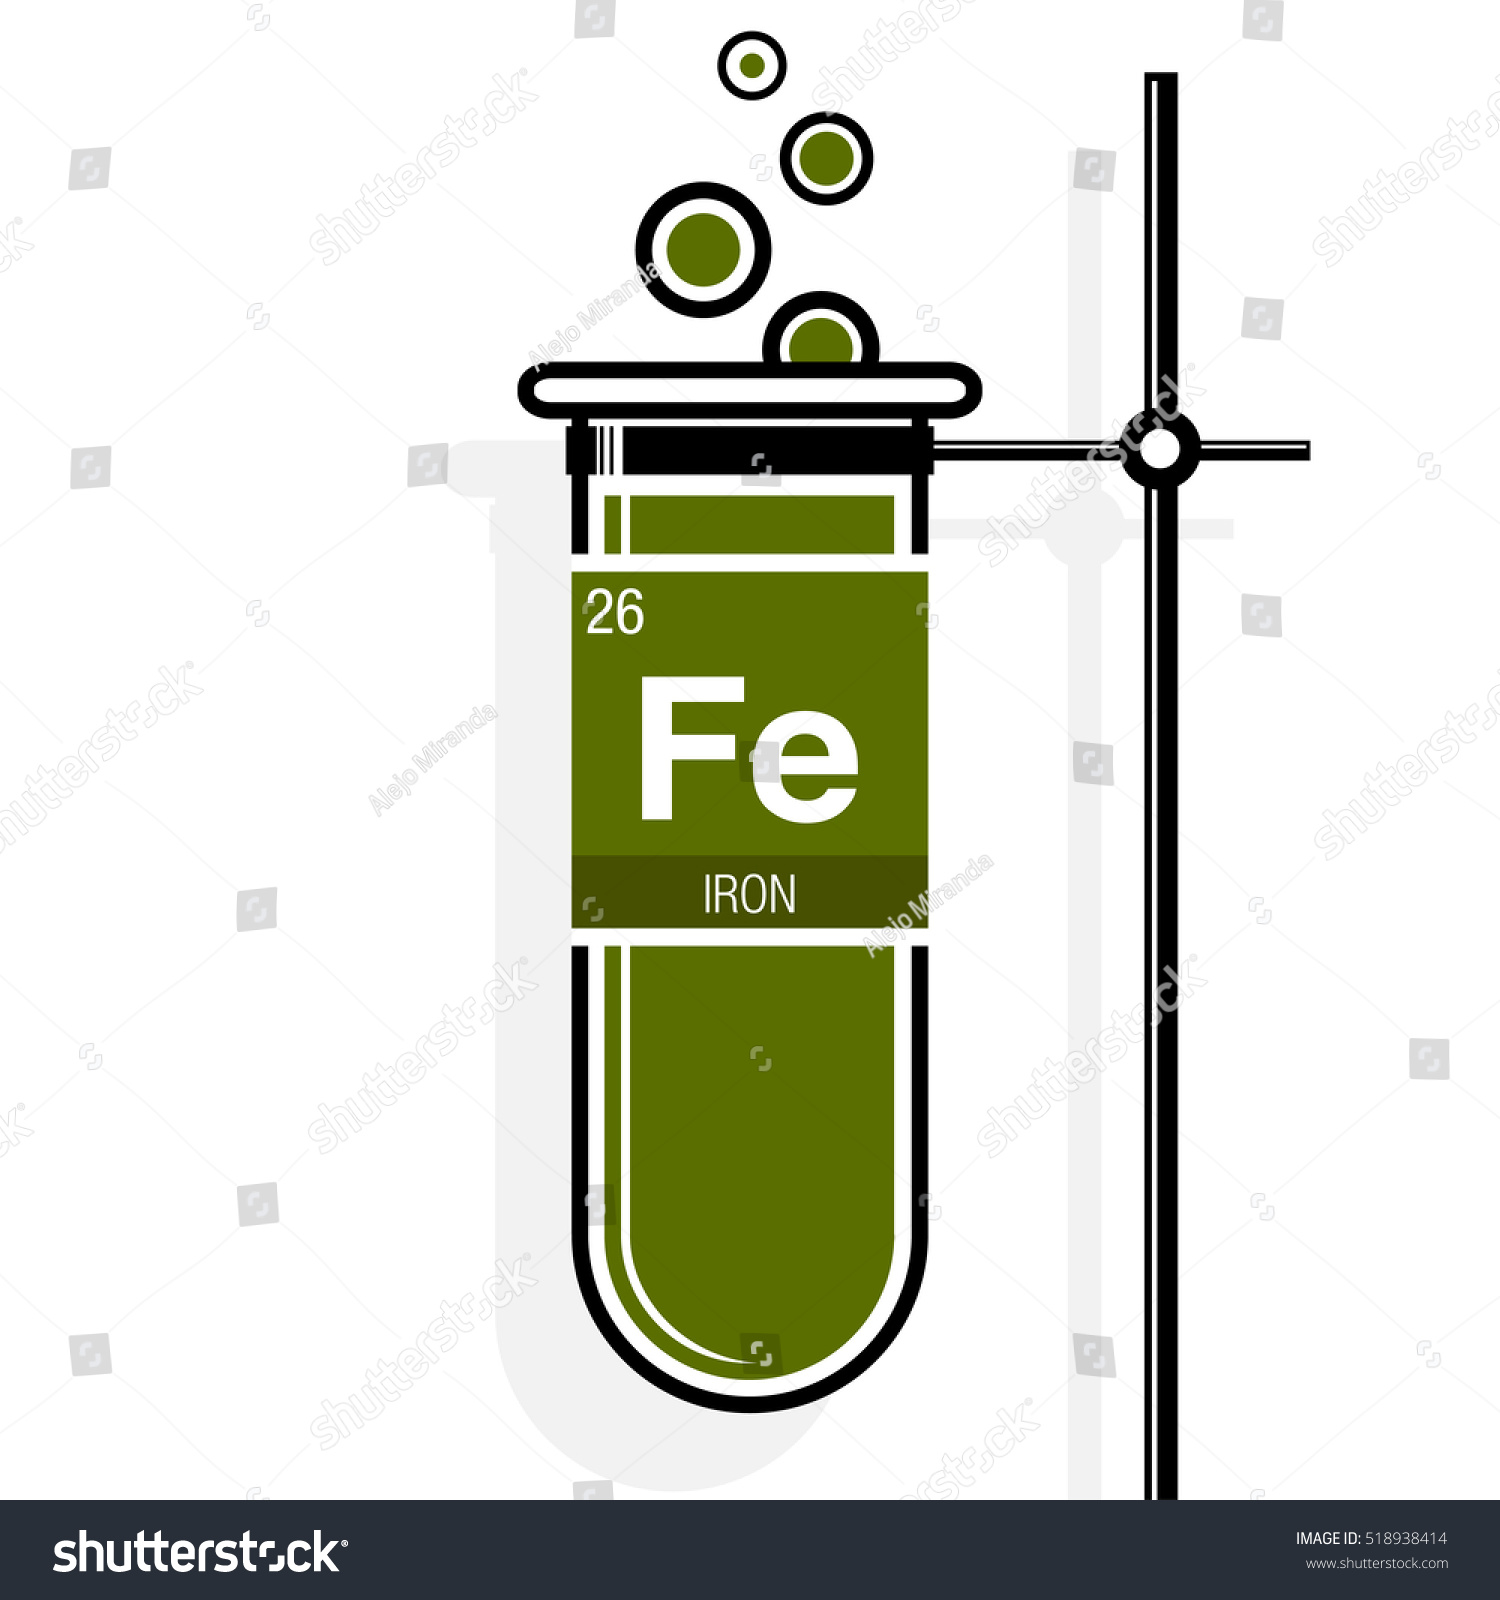 Periodic table symbol for iron choice image periodic table images iron symbol on label green test stock vector 518938414 shutterstock iron symbol on label in a gamestrikefo Image collections